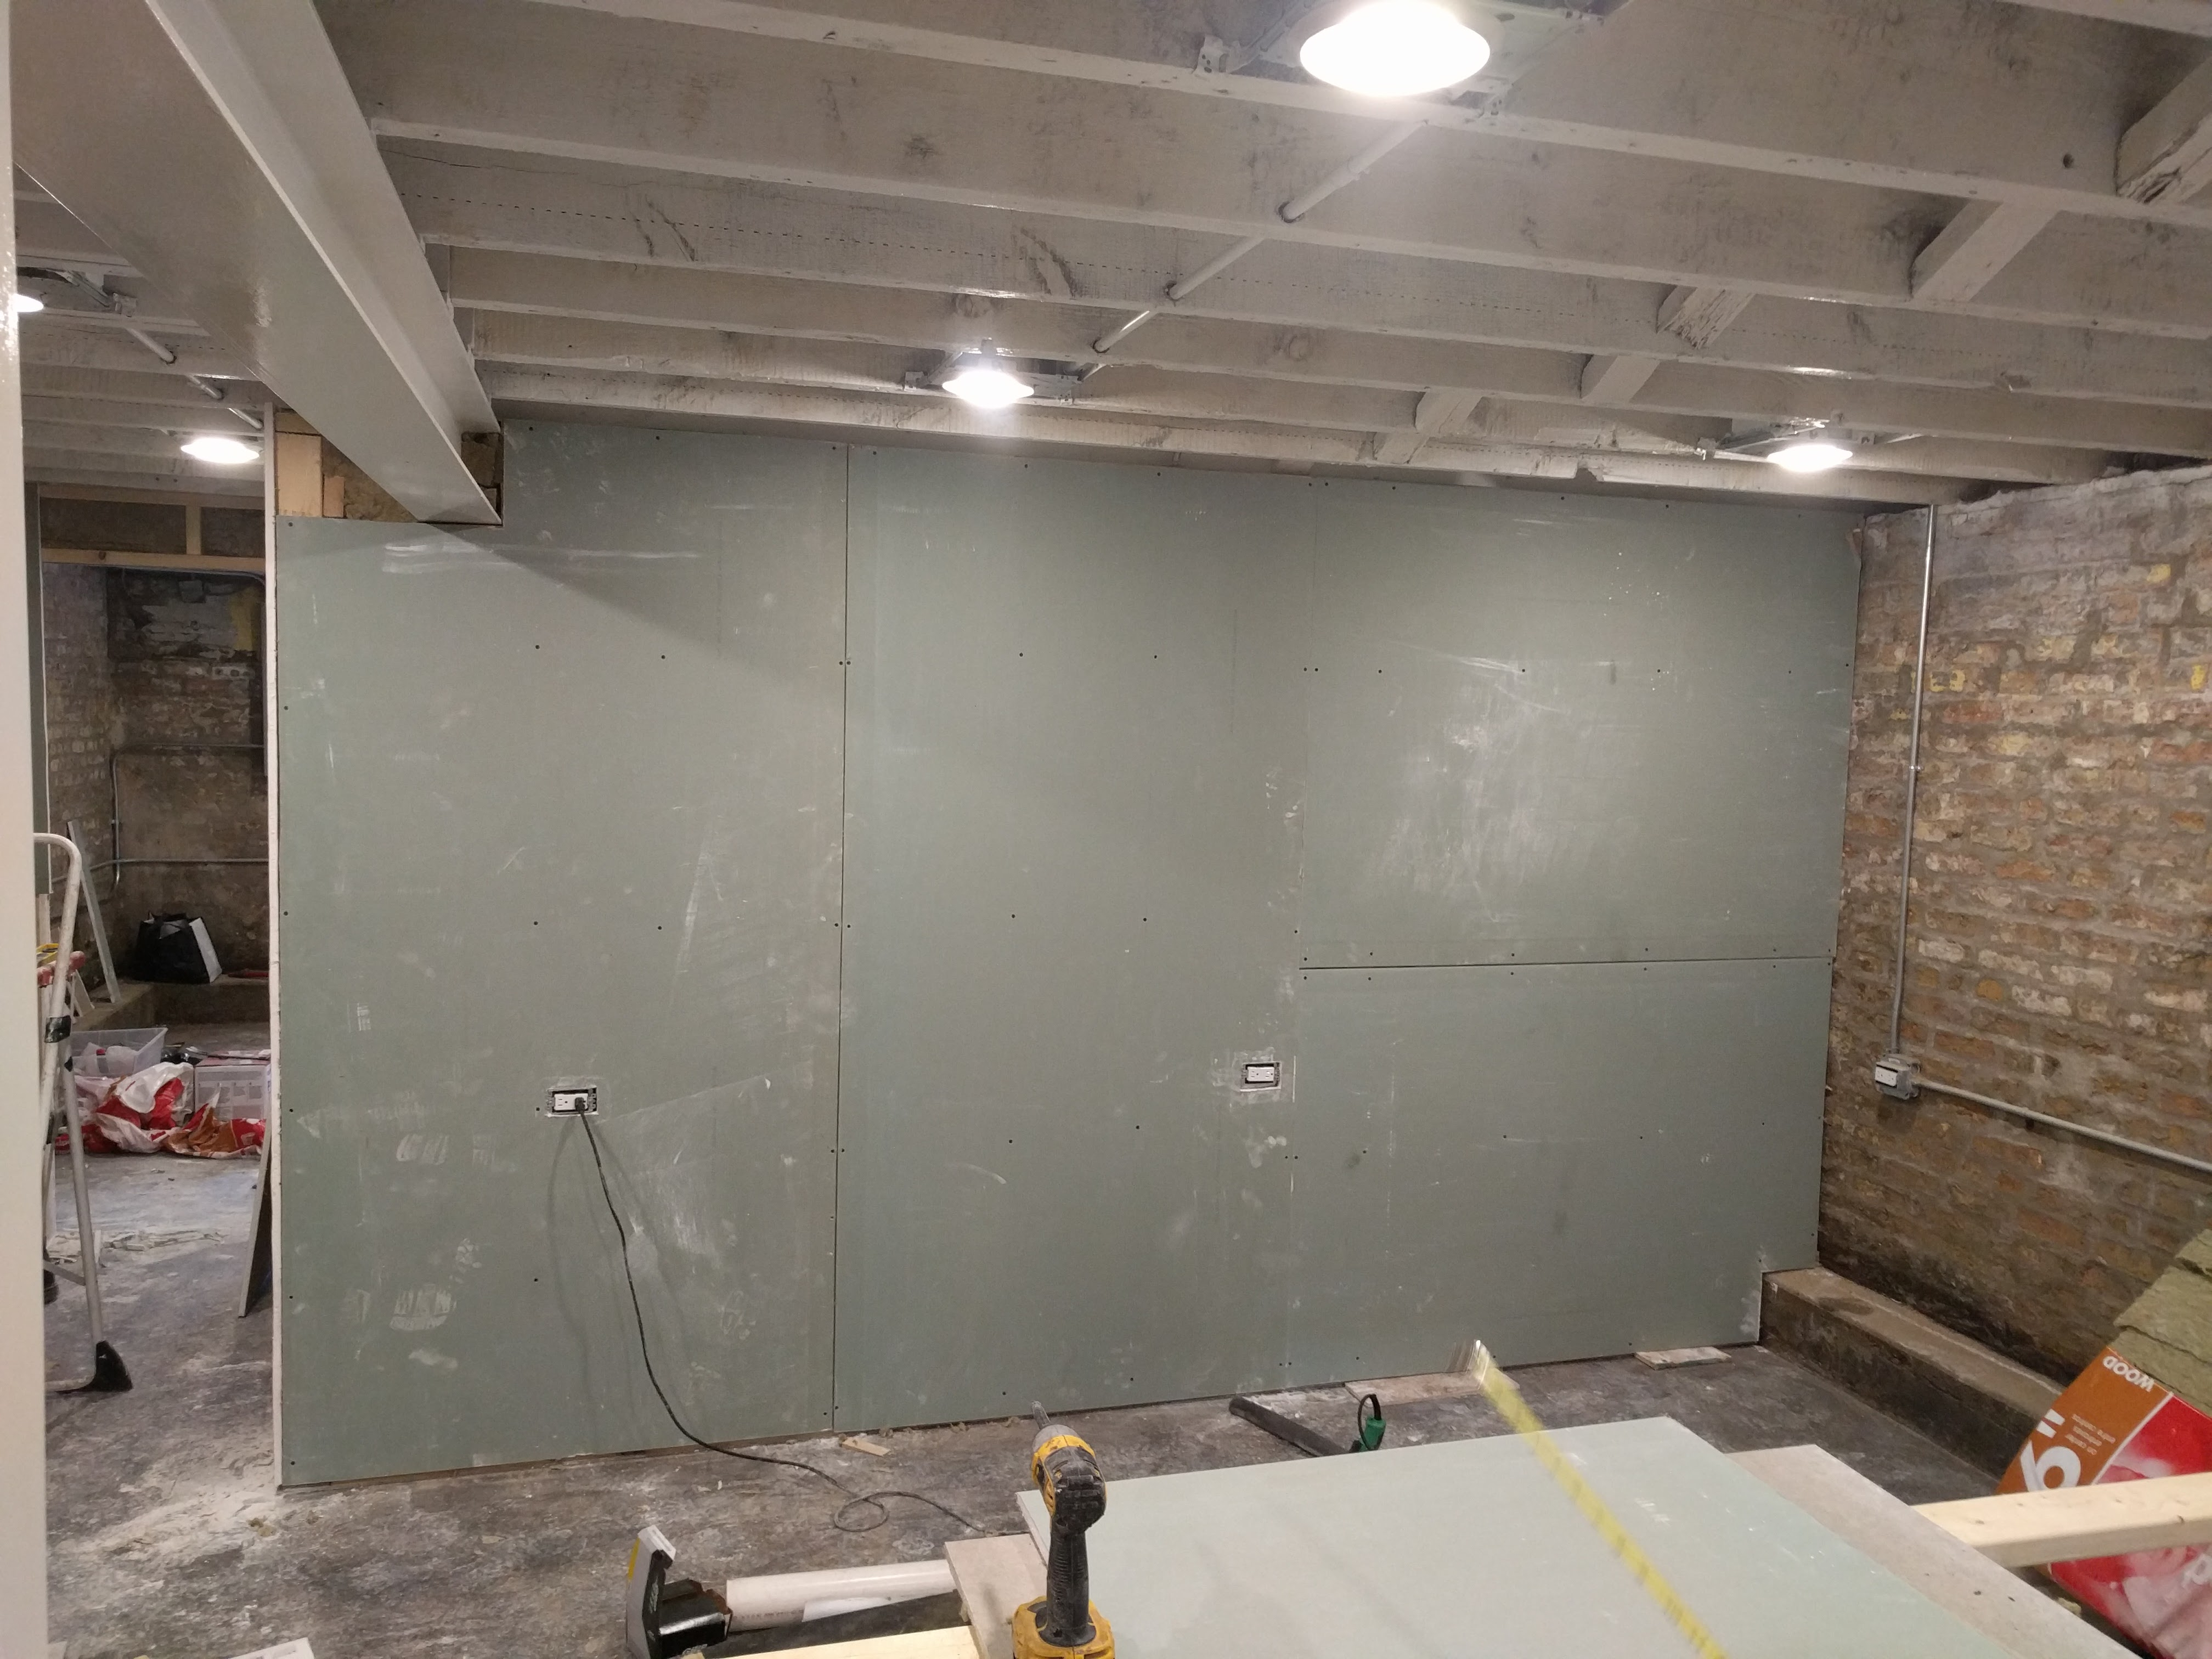 Basement Permanent Wall Drywall Hanging Two Flat Remade